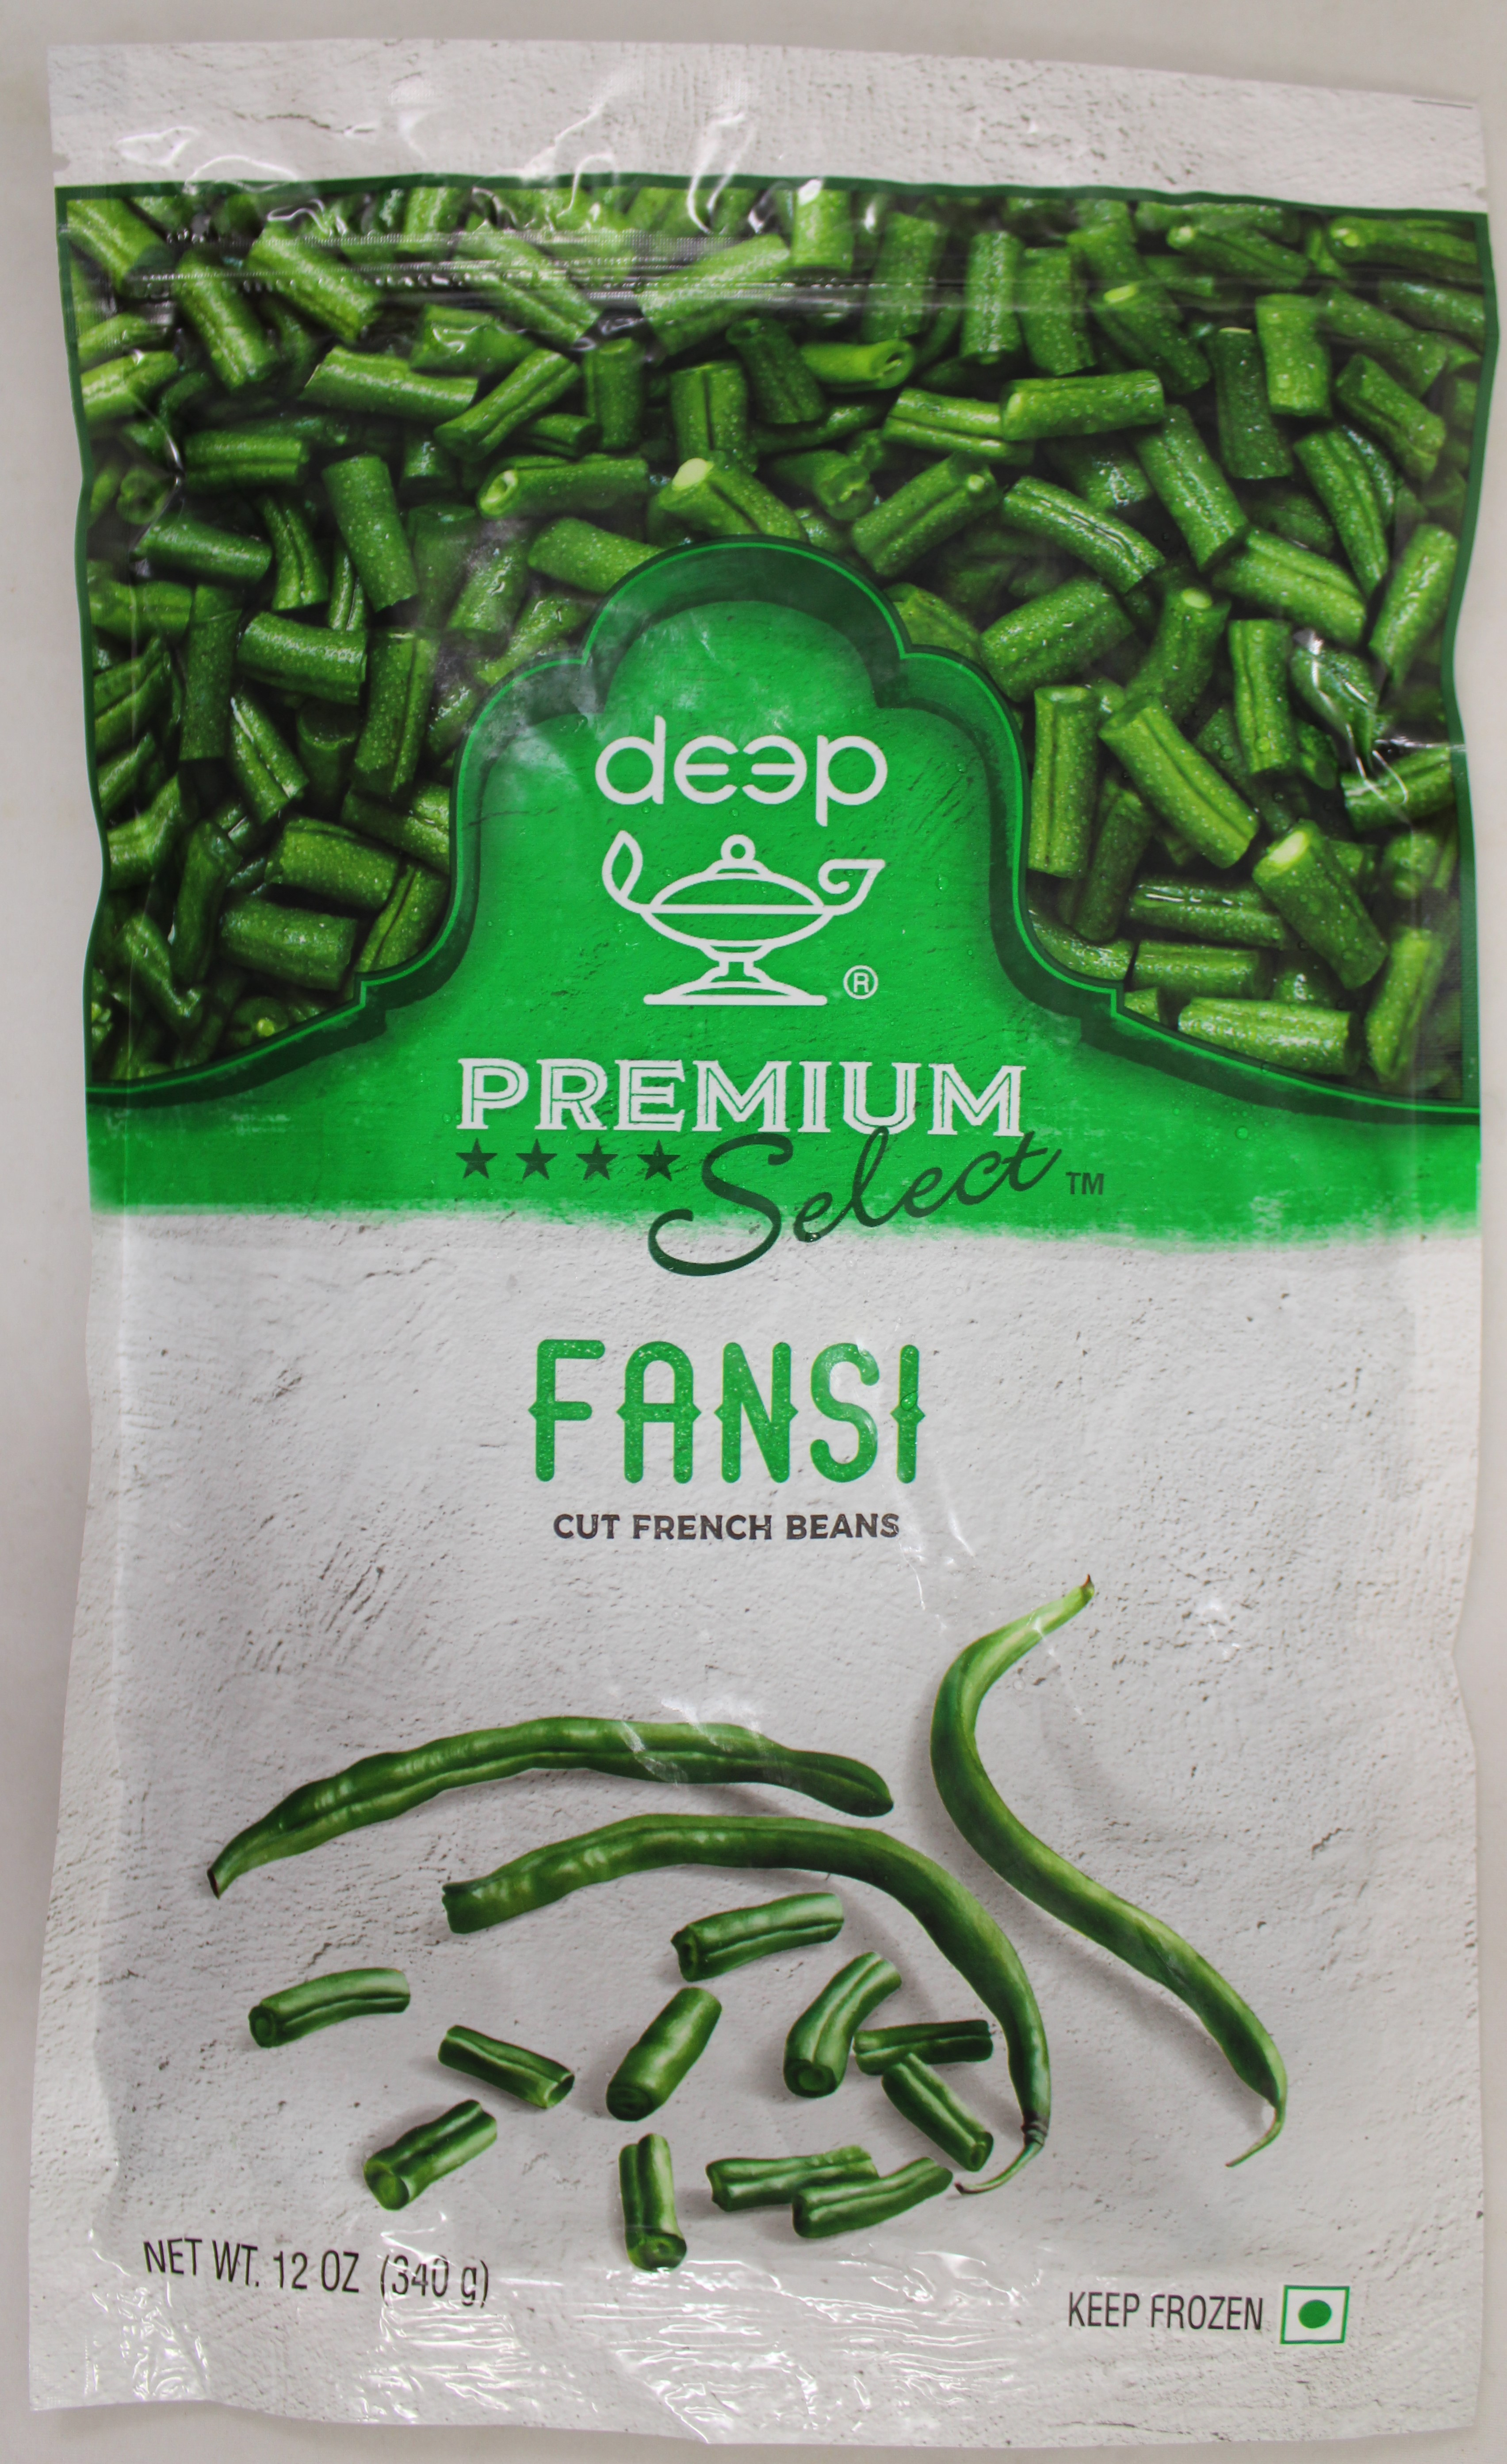 Fansi (Cut French Beans) 12oz